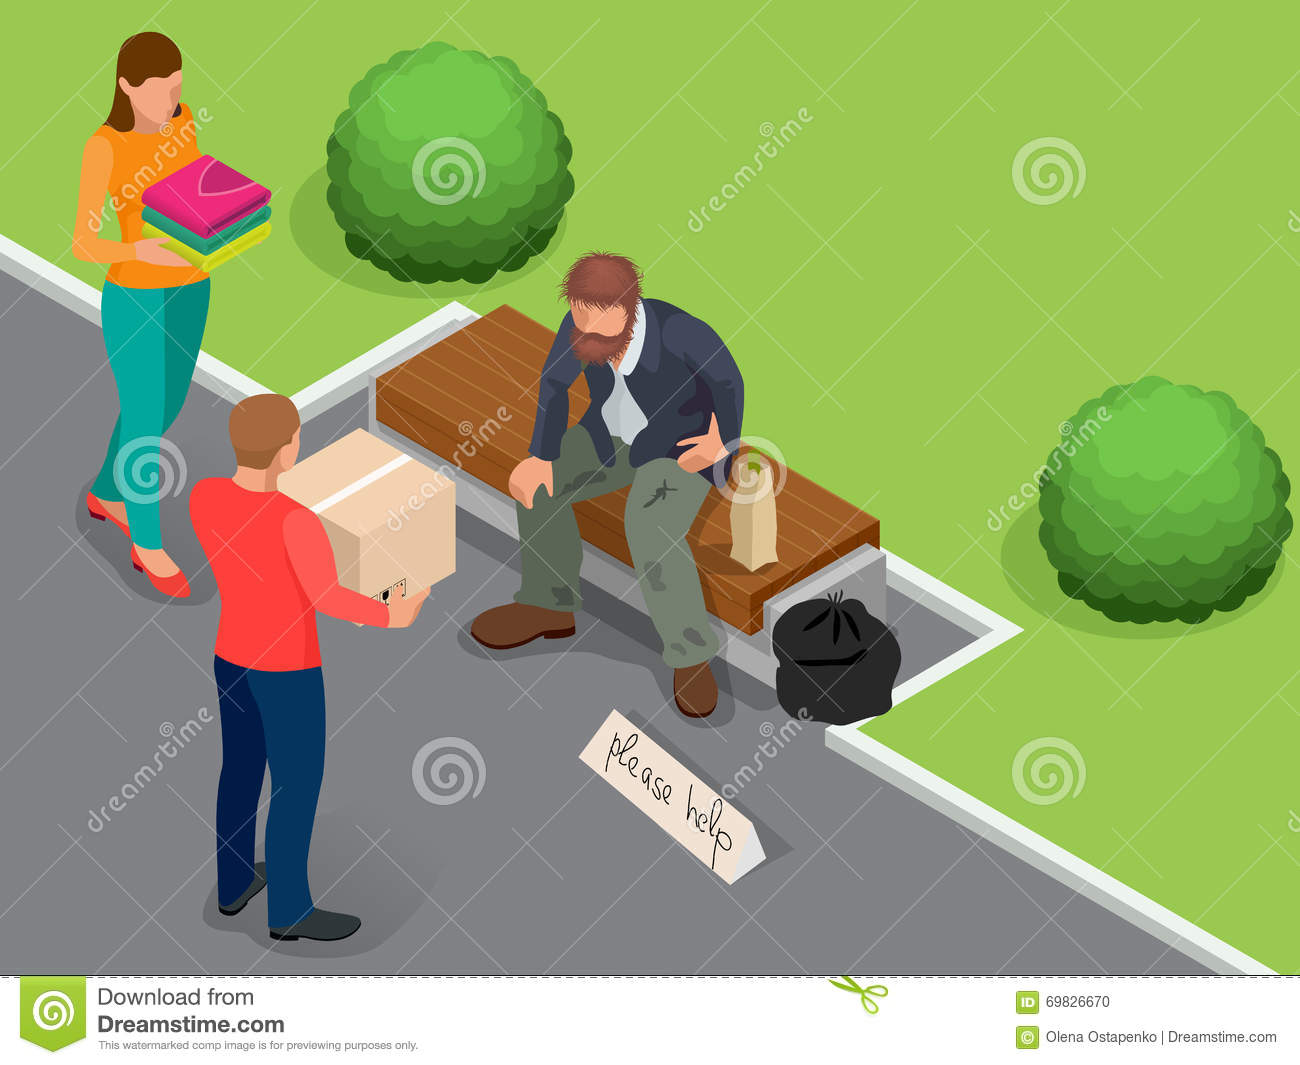 Caring for homeless. Help Homeless. Dirty homeless man holding sign asking for help. Flat 3d isometric vector